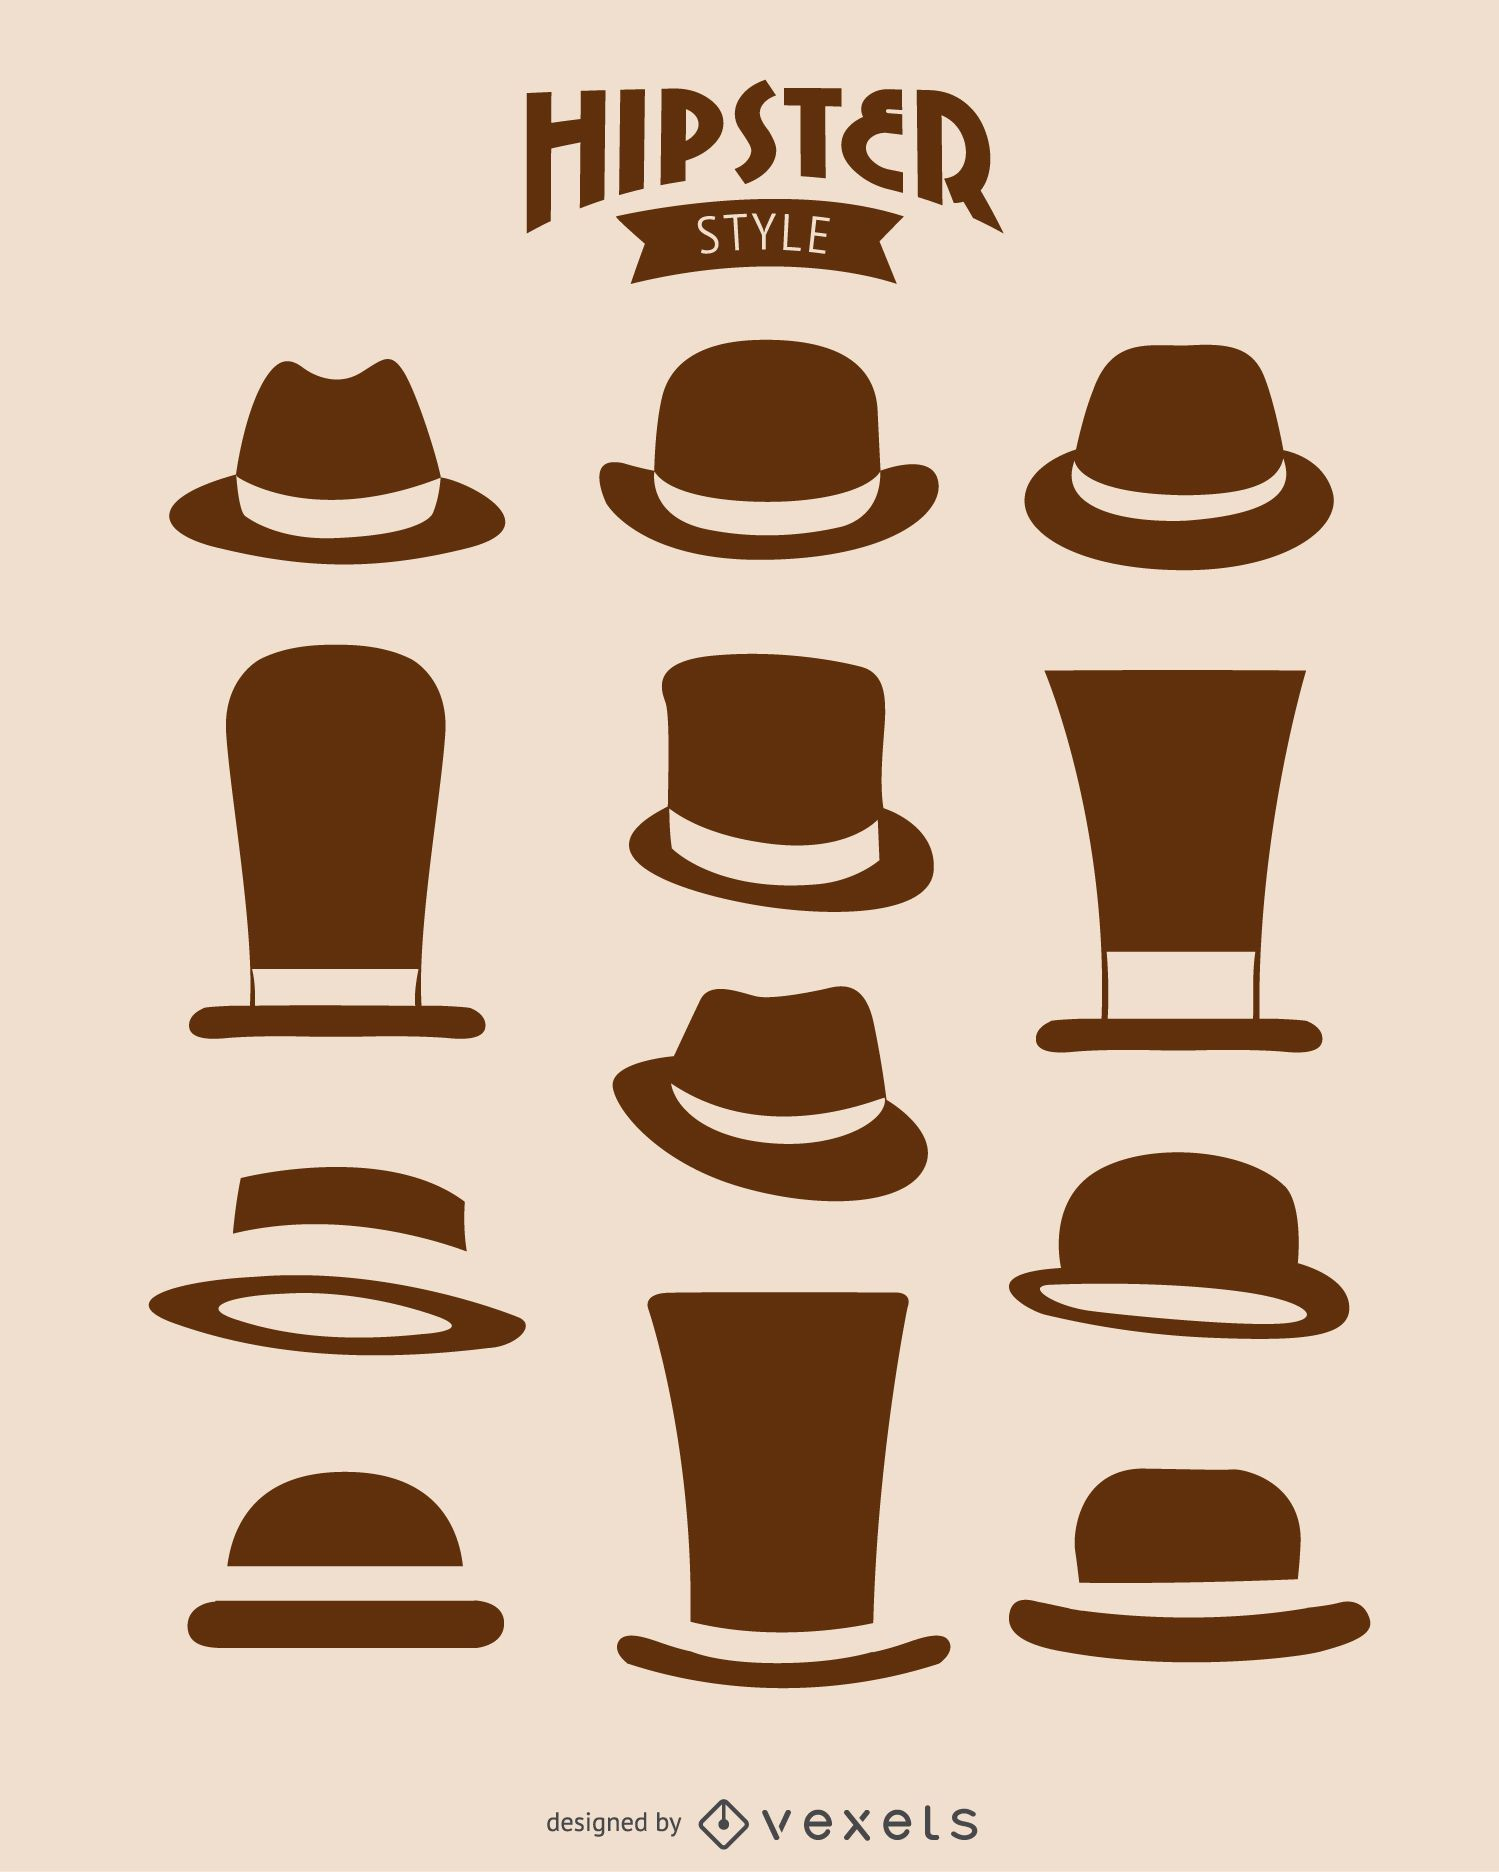 12 Hipster hats